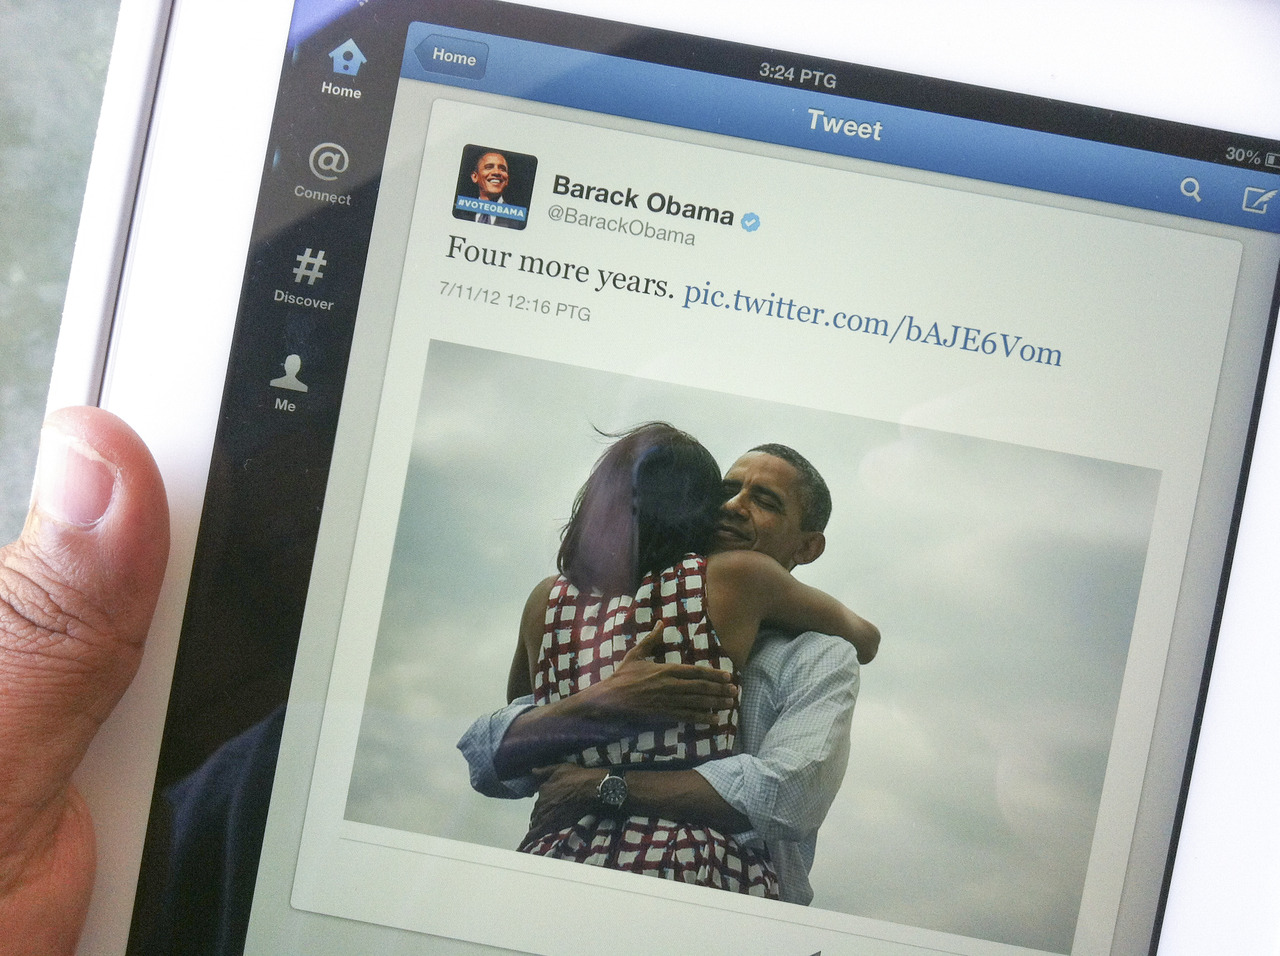 "Meet the Mind Behind Barack Obama's Online Persona You've most definitely seen it by now. Michelle Obama, wearing a red-and-white checkered dress, stands with her back to the camera. Her arms are wrapped around her husband, the hints of a smile lingering on the edges of his lips. ""Four more years,"" reads the text, which was posted on the Obama campaign's social media accounts around 11:15pm on election night' just as it became clear the president had won a second term.  The photo, taken by campaign photographer Scout Tufankjian just a few days into the job, pretty much won the internet: 816,000 retweets, the most likes ever on Facebook; thousands of reblogs on Tumblr. And yet it wasn't chosen by the president's press secretary, or even a senior-level operative, but by 31-year-old Laura Olin, a social media strategist who'd been up since 4am. For the first time since the campaign ended, she talked to Tumblr, in partnership with The Daily Beast, about what it's like being the voice of the President — where millions of people, and a ravenous press, await your every grammatical error. So how does it actually work, being the voice of the President? Who makes the decisions about what to post? All of our decisions were made in-house — in Chicago, mostly — so we weren't getting direct directives from the White House or anything. But we tried as much as possible to have voices for each account, so depending on the message — because we had all these channels — we had an appropriate place to put it. Obviously some stuff was sufficiently huge so that it went everywhere, but as much as possible we tried to tailor the message for the channel and the audience. It must be daunting. It was kind of terrifying, actually. My team ran the Barack Obama Twitter handle, which I think was probably most susceptible to really embarrassing and silly mistakes. We didn't ever really have one, which I still can't believe we pulled off. Was it pretty much constant terror? It was choosing people for the team who not only were creative — and knew their social media shit — but were really kind of fanatical about fact checking and accuracy. It was getting people that understood there had to be serious fear of God before posting anything. It got to be exhausting, but I'm really proud we avoided a really embarrassing ""Amercia"" situation. Did you have any close calls? Not anything too terrible but just embarrassing typos. But not anything as bad as Amercia. Because that's pretty damn bad. Do you think Republicans are more tone deaf when it comes to social media than Democrats?  I think they're a little more tone deaf generally, but I'm sure there are people that get it. I think one of the great things about our campaign is that they recognized that digital was going to be a huge part of it. They put a lot of trust in my boss, [Obama for America Digital Director] Teddy Goff, and he in turn put a lot of trust in us, that we knew what we were doing, and to follow our gut, they just need to be brave enough to just let people who know their shit do what they do. But I'm perfectly content if they don't figure that out for a while. How did you guys decide what voice to speak in? Was it more casual than real life? One thing I was really proud of was we always tried to be really human, like speak to people like we'd like to be spoken to, and never go into, you know, ""speechiness."" We actually had a list of banned words — like, don't use words that only politicians use in speeches, don't be a douchebag, stuff like that.  It was nice to see you guys embrace the GIF on Tumblr. Was that a conscious decision? We recognized early on that when we put up a GIF or reblogged a GIF it would have a better reach than just a static image. It's just another way to speak in the terms of the community — and make things more fun. This isn't rocket science at all, but I think something that we discovered — or tried to implement — was that if you put things in terms that people actually want to share, they will share them. Political campaigns historically haven't totally gotten it. Tell me what election night was like for your team. The digital campaign was divided into people who were responsible for putting out planned content — so, like, find your polling place — and a rapid-response team. We also did targeted posts and tweets encouraging people to stay in line, getting out information where their new polling place was, stuff like that. We actually went through a few dry runs in the weeks before election day to make sure that we had that entire process down. And how'd the Four More Years photo come about? We'd all been there since 4am or 6am, we're exhausted, I refused to believe that we were actually winning, but we started thinking, around 8:30 or 9:00, ""What do we do next?"" One of my team members remembered an amazing photo of the president and first lady hugging at the president's last campaign rally in Des Moines. It's this really beautiful photo at night — the only thing was that Michelle was facing forward and the president was facing away from the camera, So my boss, Teddy Goff, made the very good point that we should see the president's face. I remembered that our campaign photographer had taken a series of really great hug photographs at another Iowa rally, in the summer, and I went to our photo editor and she was like ""Yes!"" She found the photo, I wrote a couple captions, we went with ""Four more years,"" they called Iowa, I hit post, and then I closed my laptop and we jetted to the victory party. Actually, none of us looked at how the posts were doing until I opened my laptop the next morning. And, of course, it had exploded. I don't think anyone on the team had a conception that we would break every record ever, it was crazy. I think it was just a combination of the moment, and just kinda lucking into a photo that people loved that I think showed the emotion and the relief, and obviously I think everyone loves the president and the first lady together especially, so it was sort of a confluence of factors. But, uh, yeah. It worked out. — Brian Ries is the social media editor for Newsweek/The Daily Beast, who produced this story in partnership with Tumblr Storyboard. Photo by Scout Tufankjian for Obama for America."